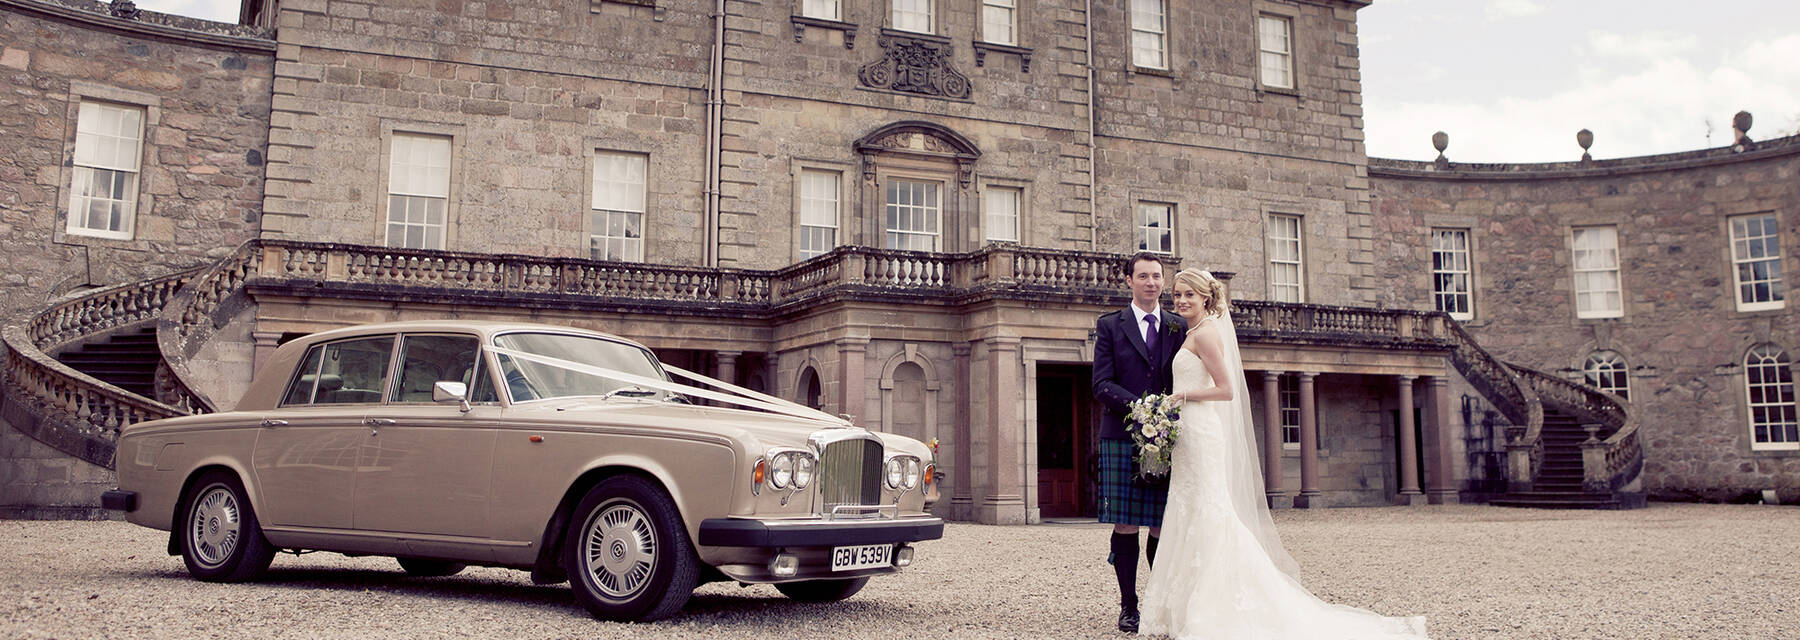 A black and white photo of a wedding couple standing beside their wedding car in front of Haddo House